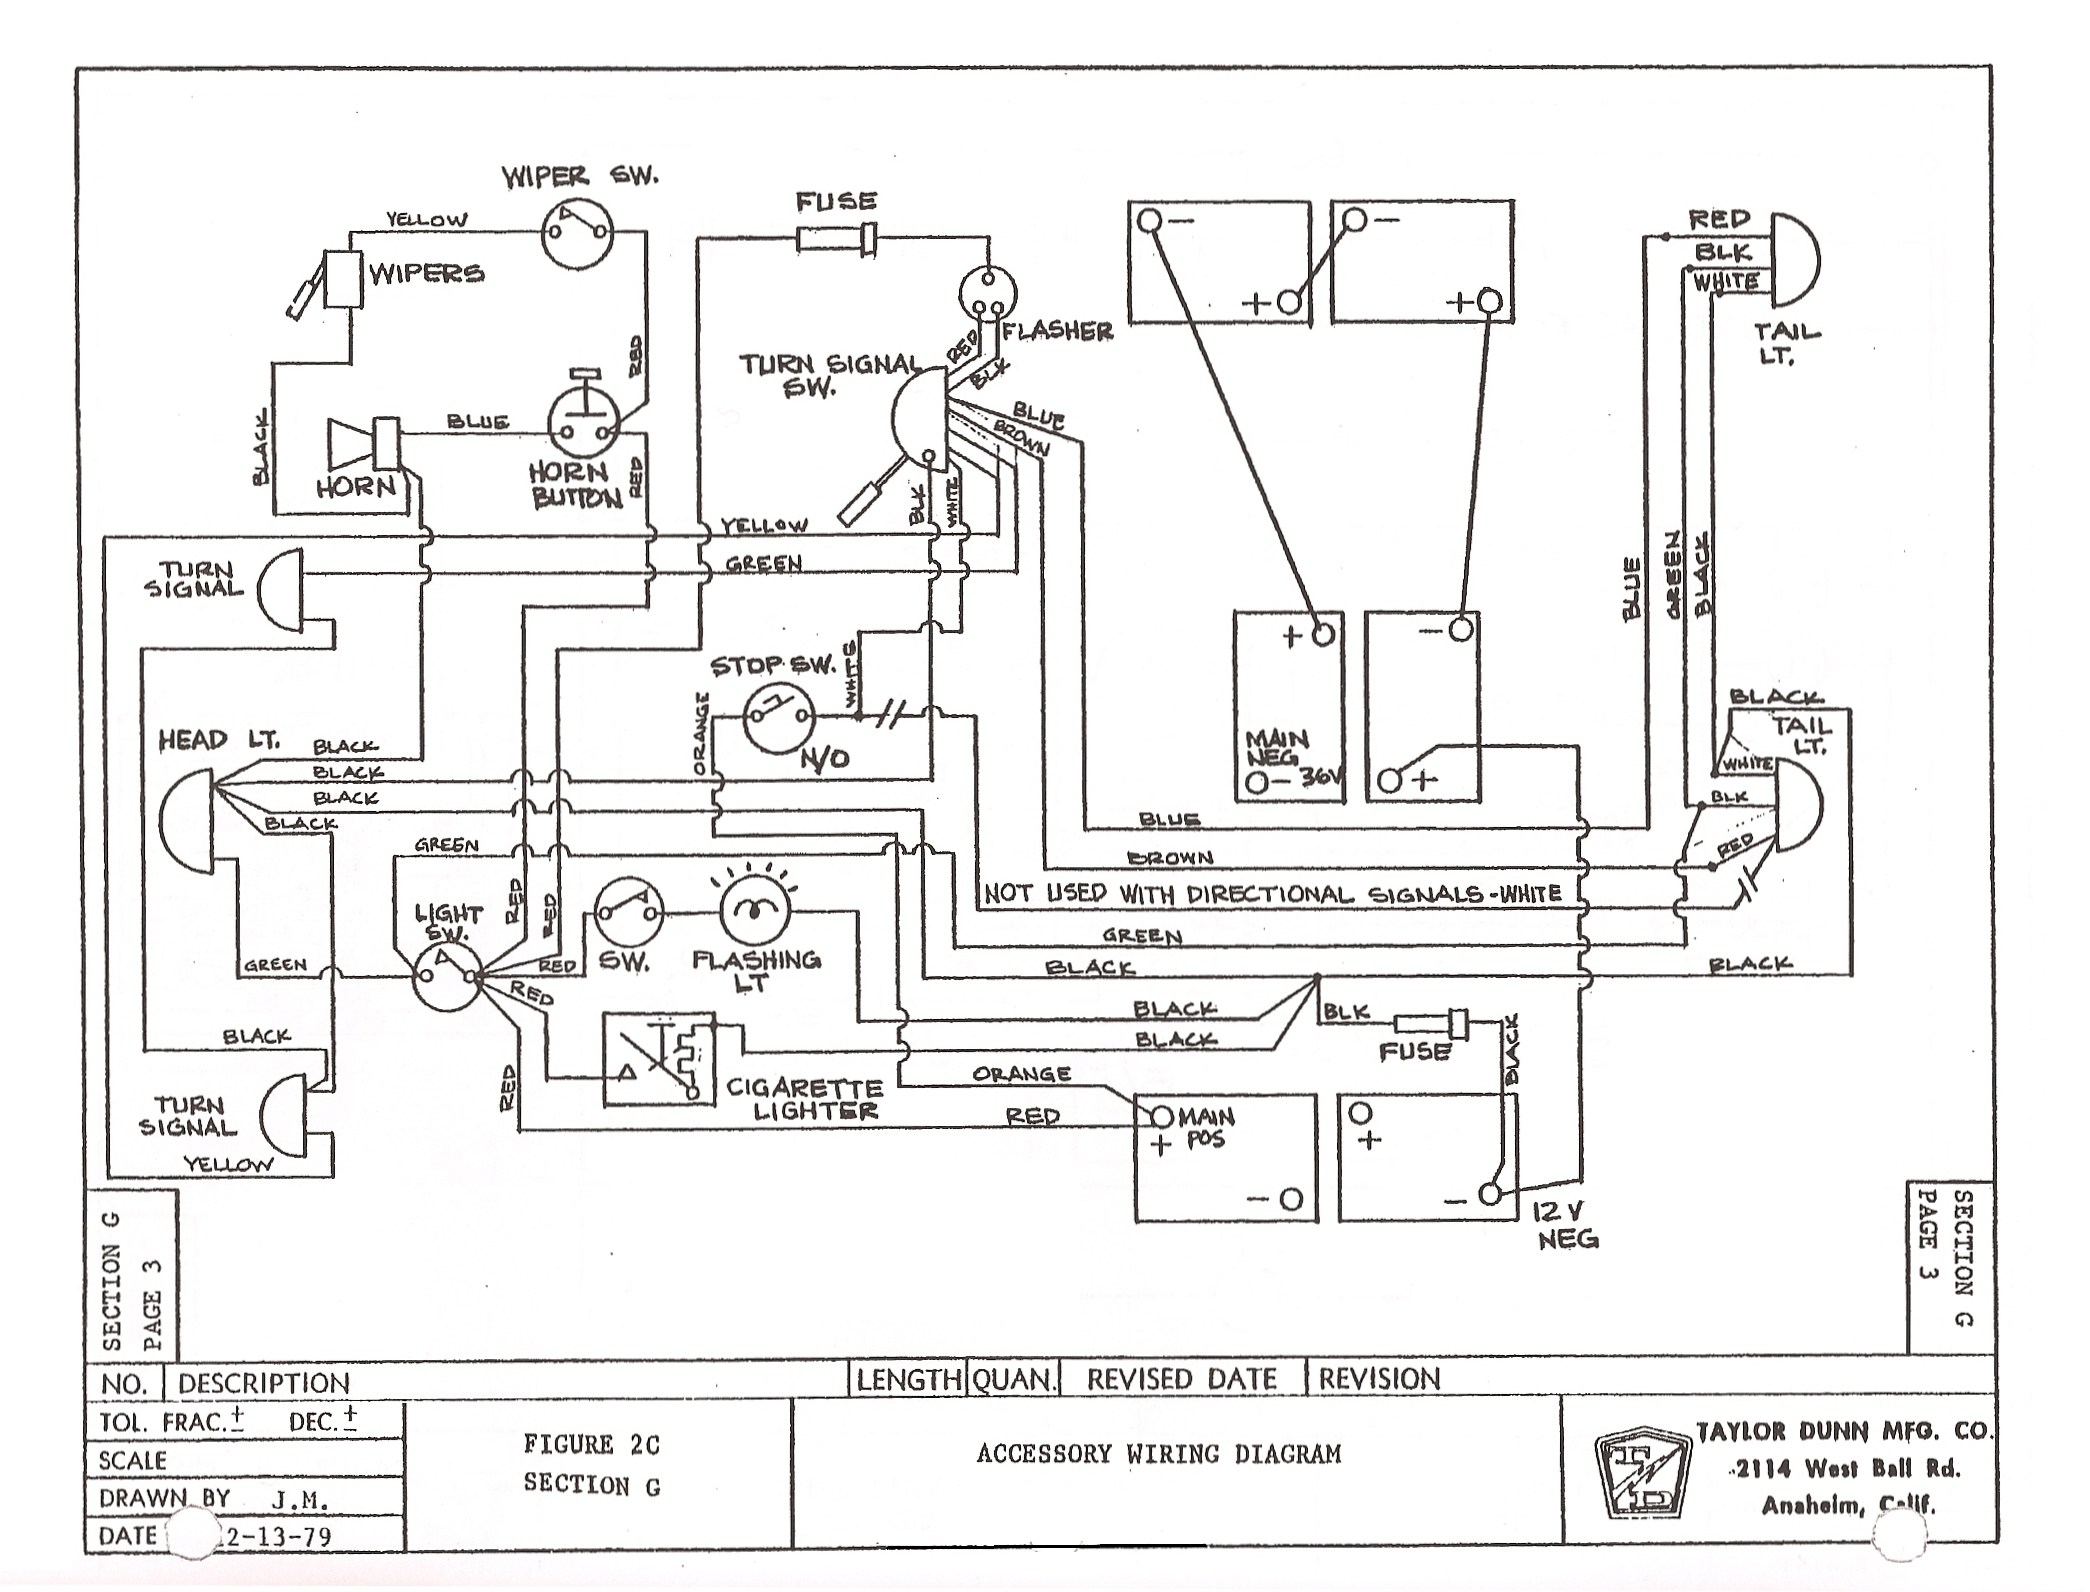 1993 club car schematic diagram with Taylor Dunn Wiring Diagram on Taylor Dunn Wiring Diagram furthermore 2uk1u Need Wiring Diagram Form Tail Light Assembly 1994 Isuzu together with 7lyge Starting Issue John Deere Gator Help as well Chevy S 10 Steering Column Wiring Diagram besides Sch.